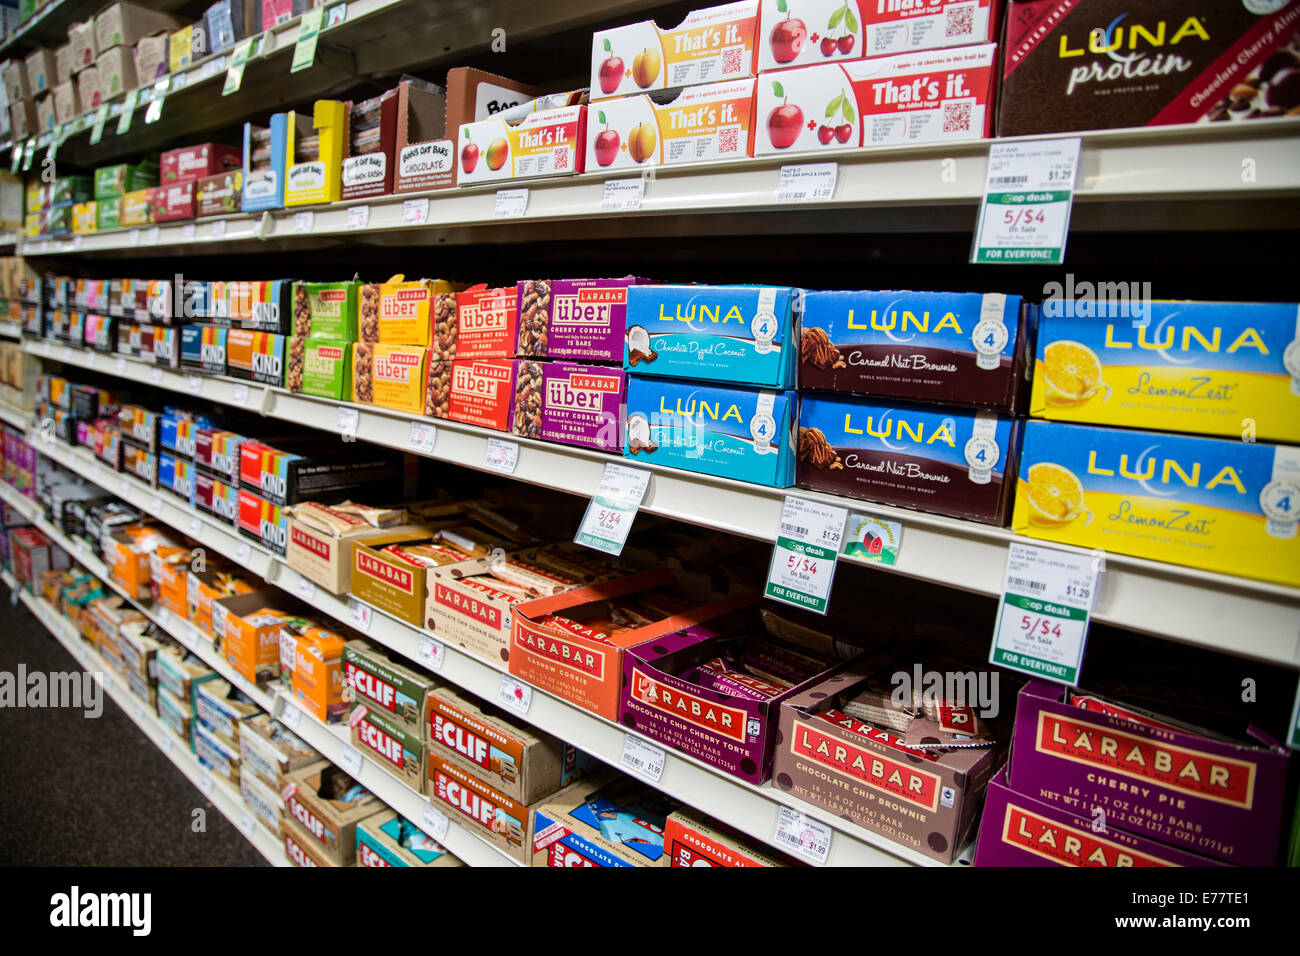 A natural foods grocery store aisle with shelves  of power protein bars. - Stock Image